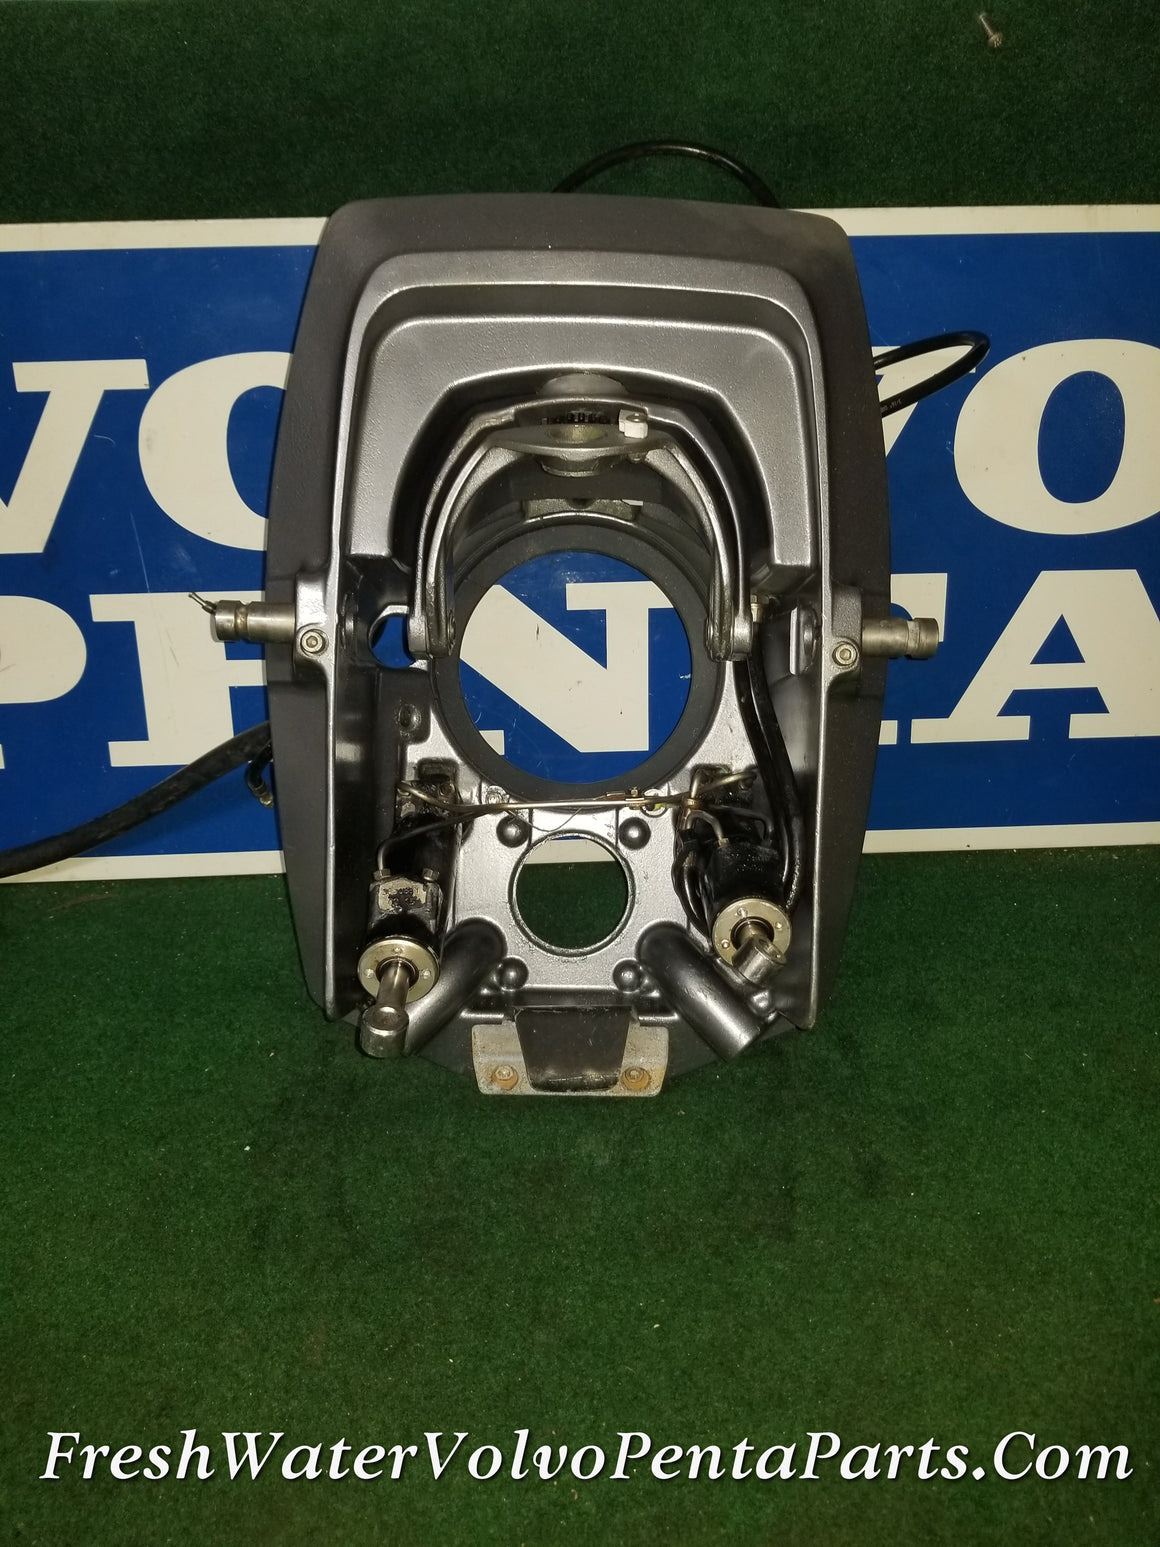 Volvo Penta Dp-E Big Pin Transom 3868724 Rebuilt Trim Cylinders Fork & Helmet assembly